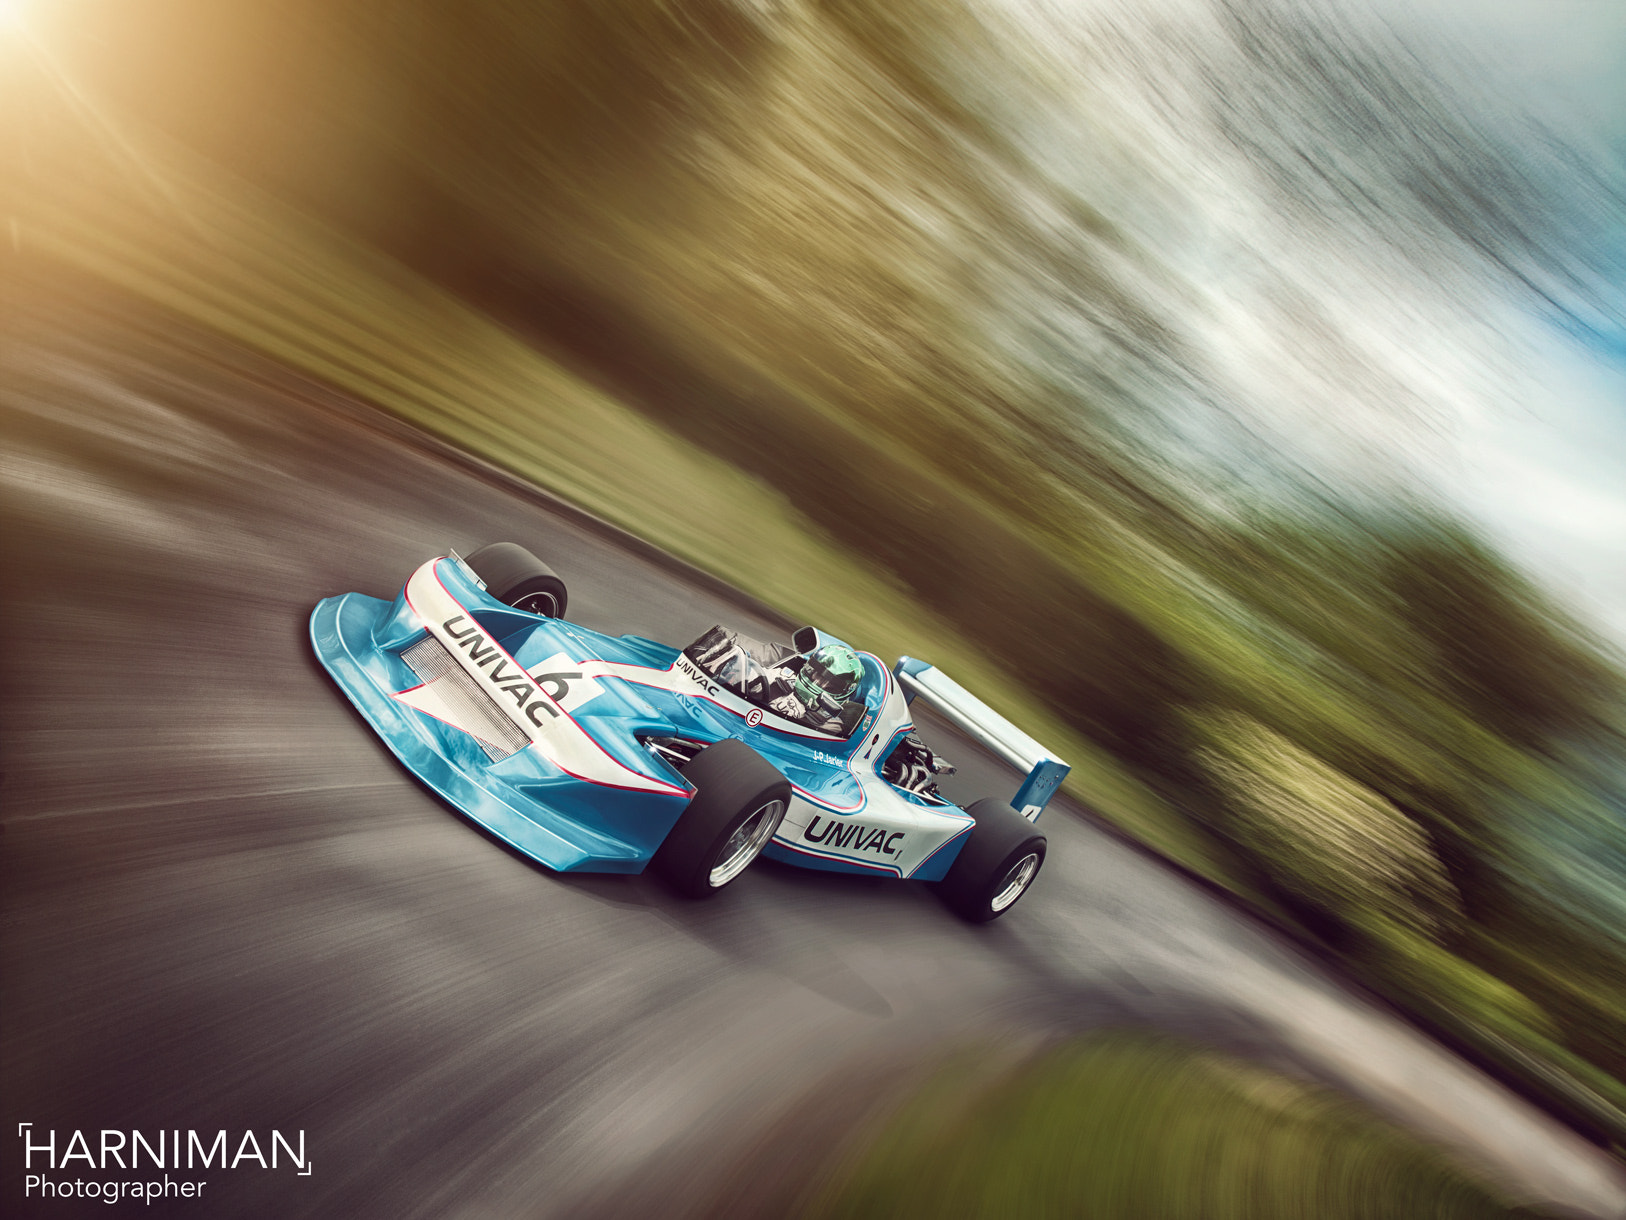 Photograph Automotive Rig Photography by Nigel Harniman on 500px